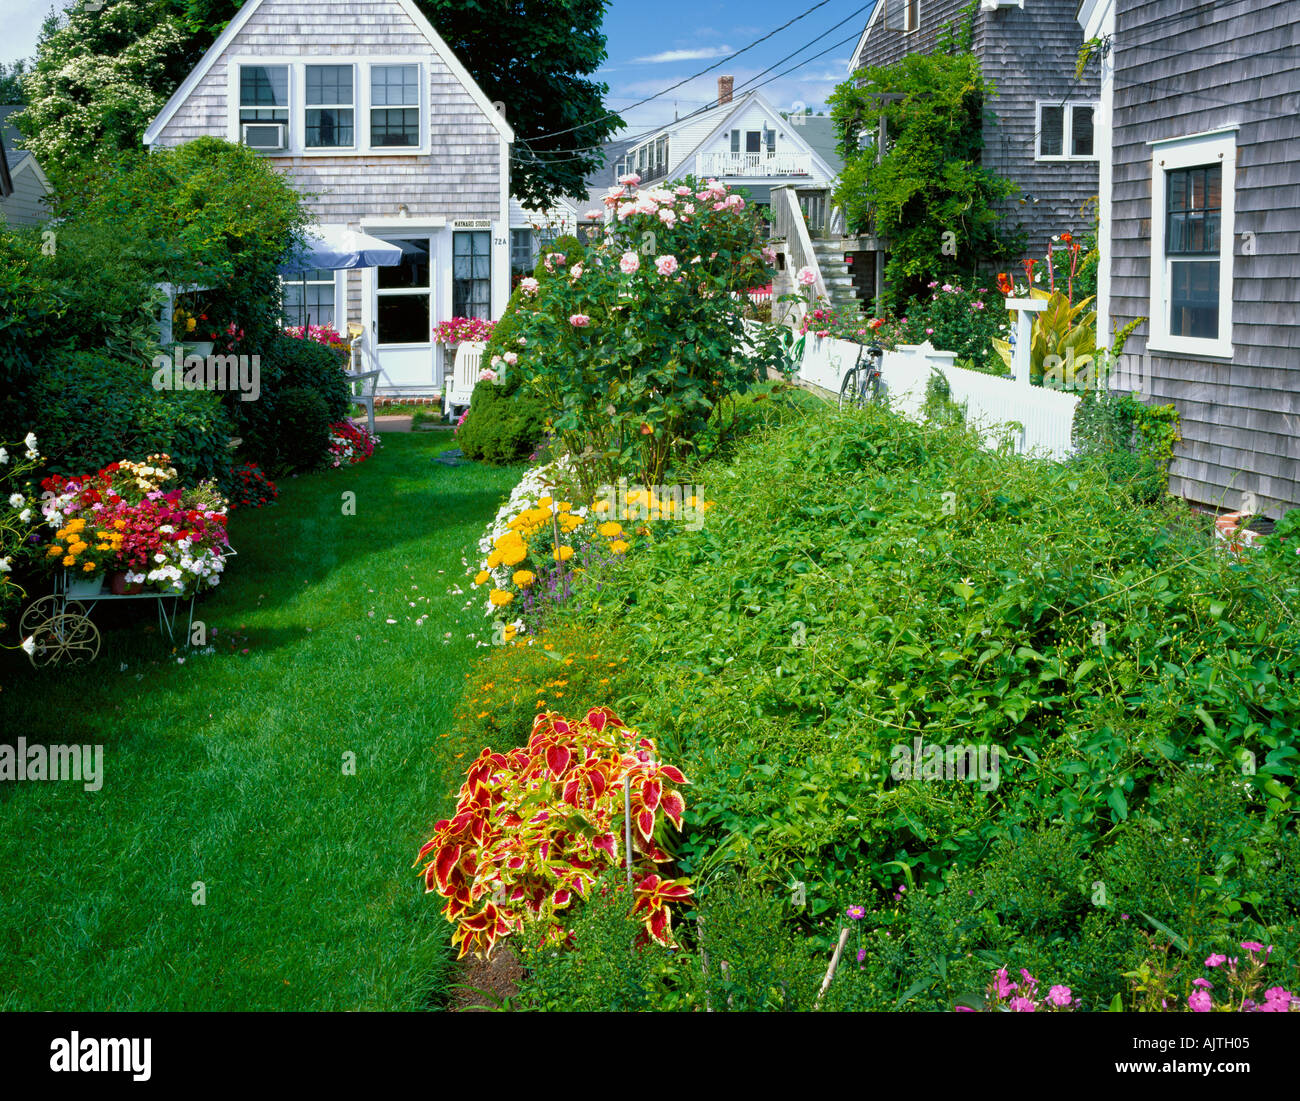 ma largest town provincetown in rentals condo cottages slide condos